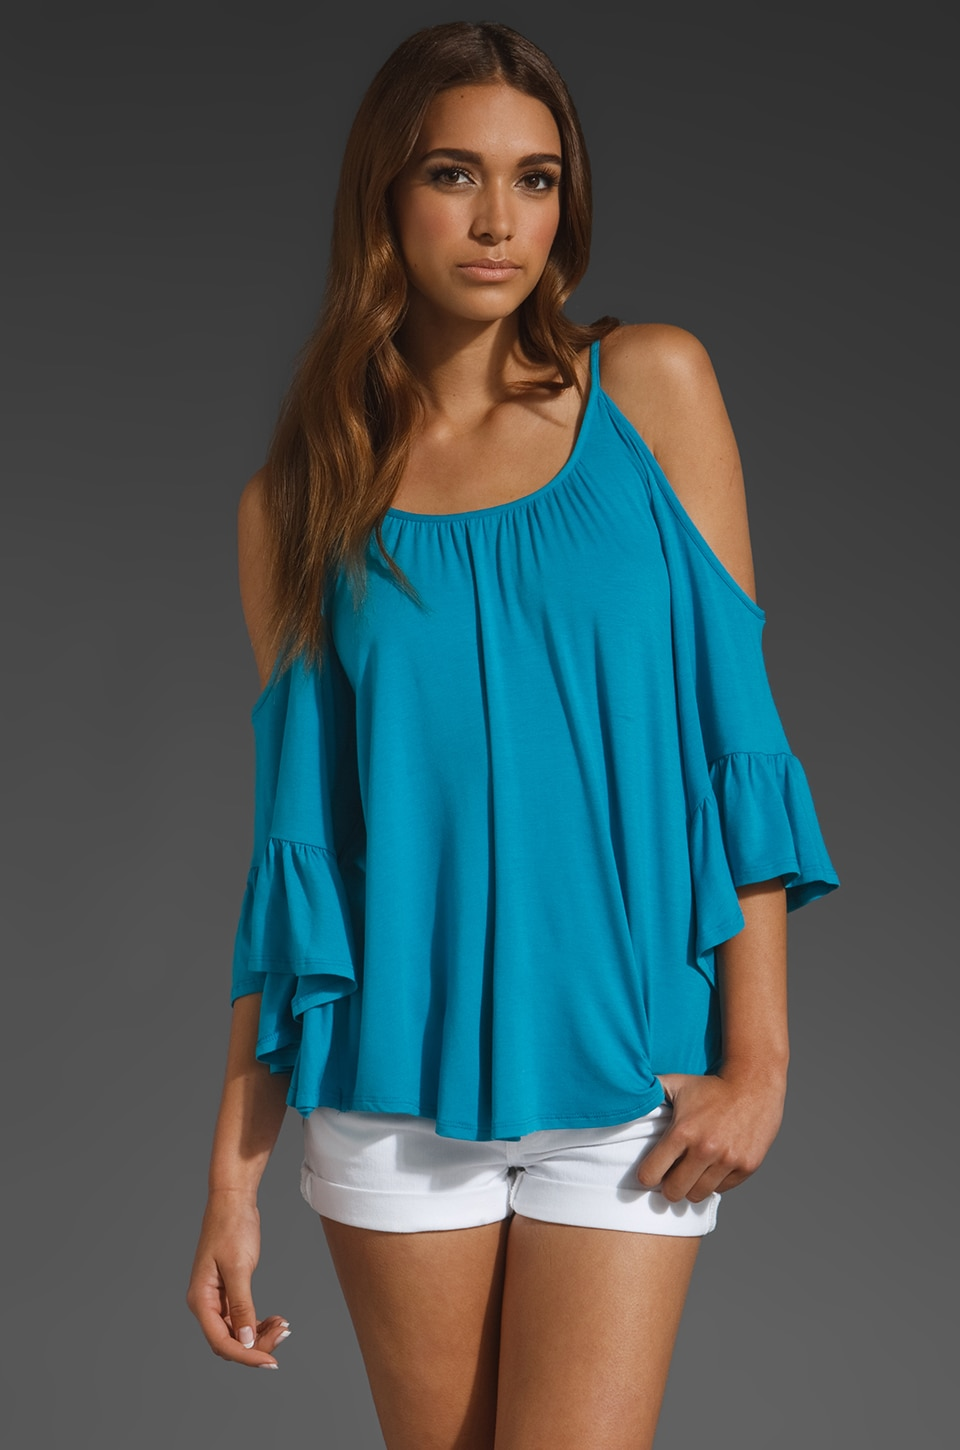 James & Joy Angela Open Shoulder Top in Electric Blue